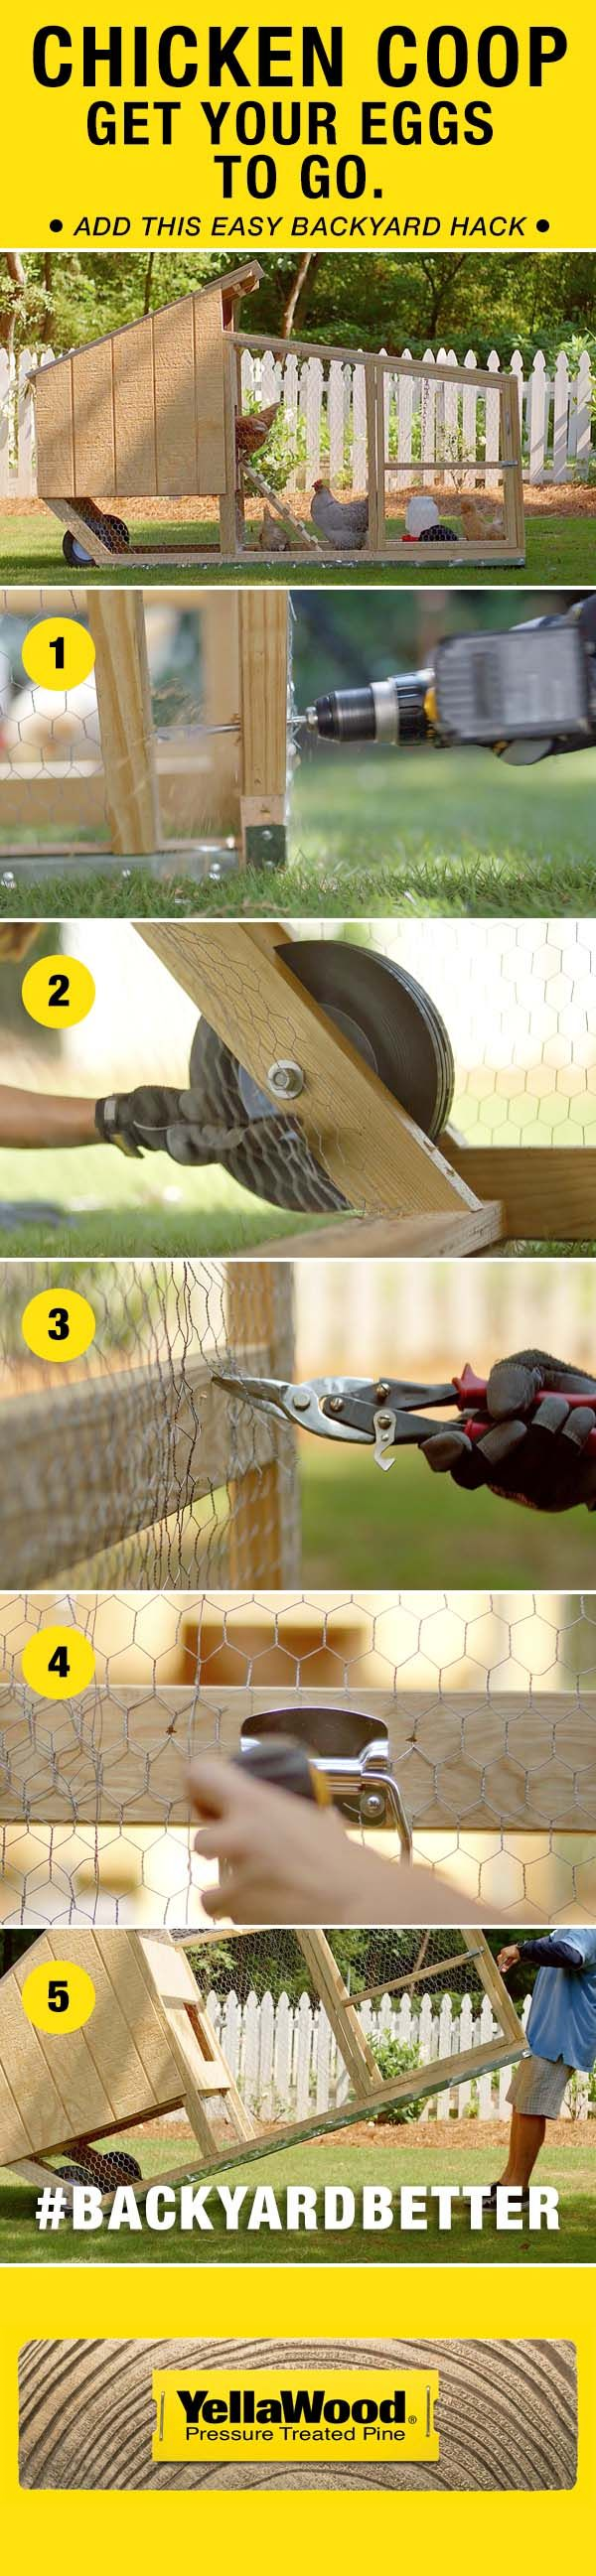 Get your eggs to go with this easy chicken coop backyard hack. #backyardbetter